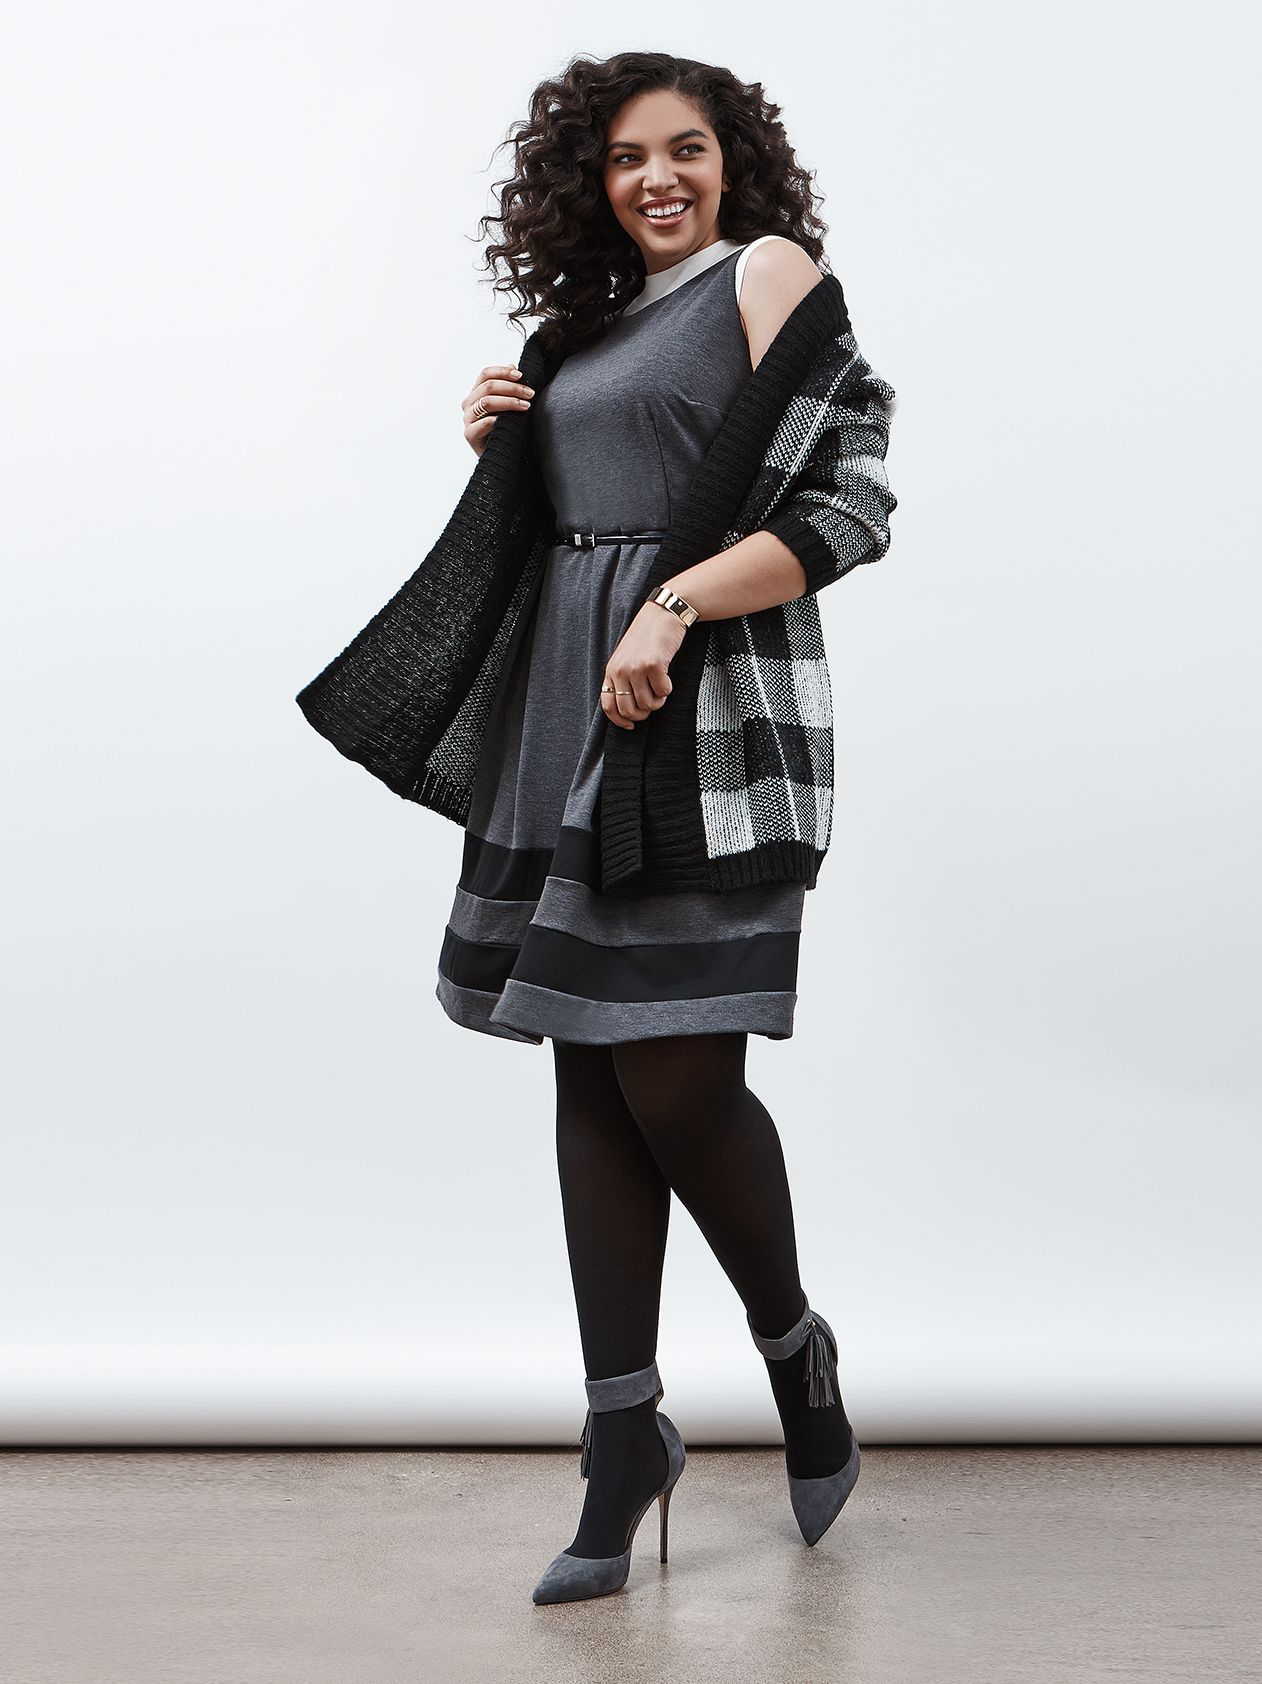 f6a217db6e7668 5 Fresh Ways to Style a Sleeveless Dress for Winter